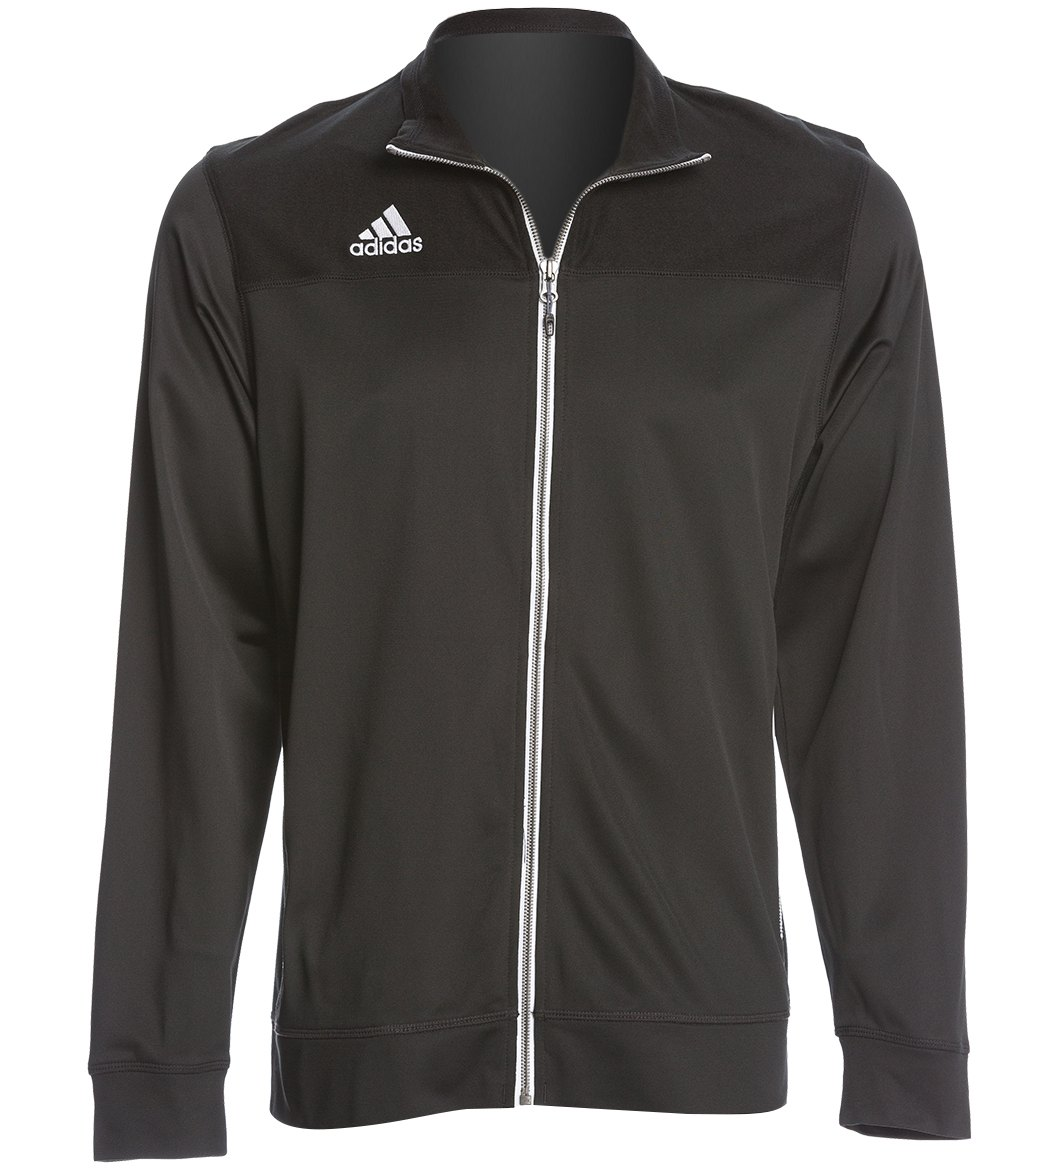 22eeee754 Adidas Men's Utility Warm Up Jacket at SwimOutlet.com - Free Shipping